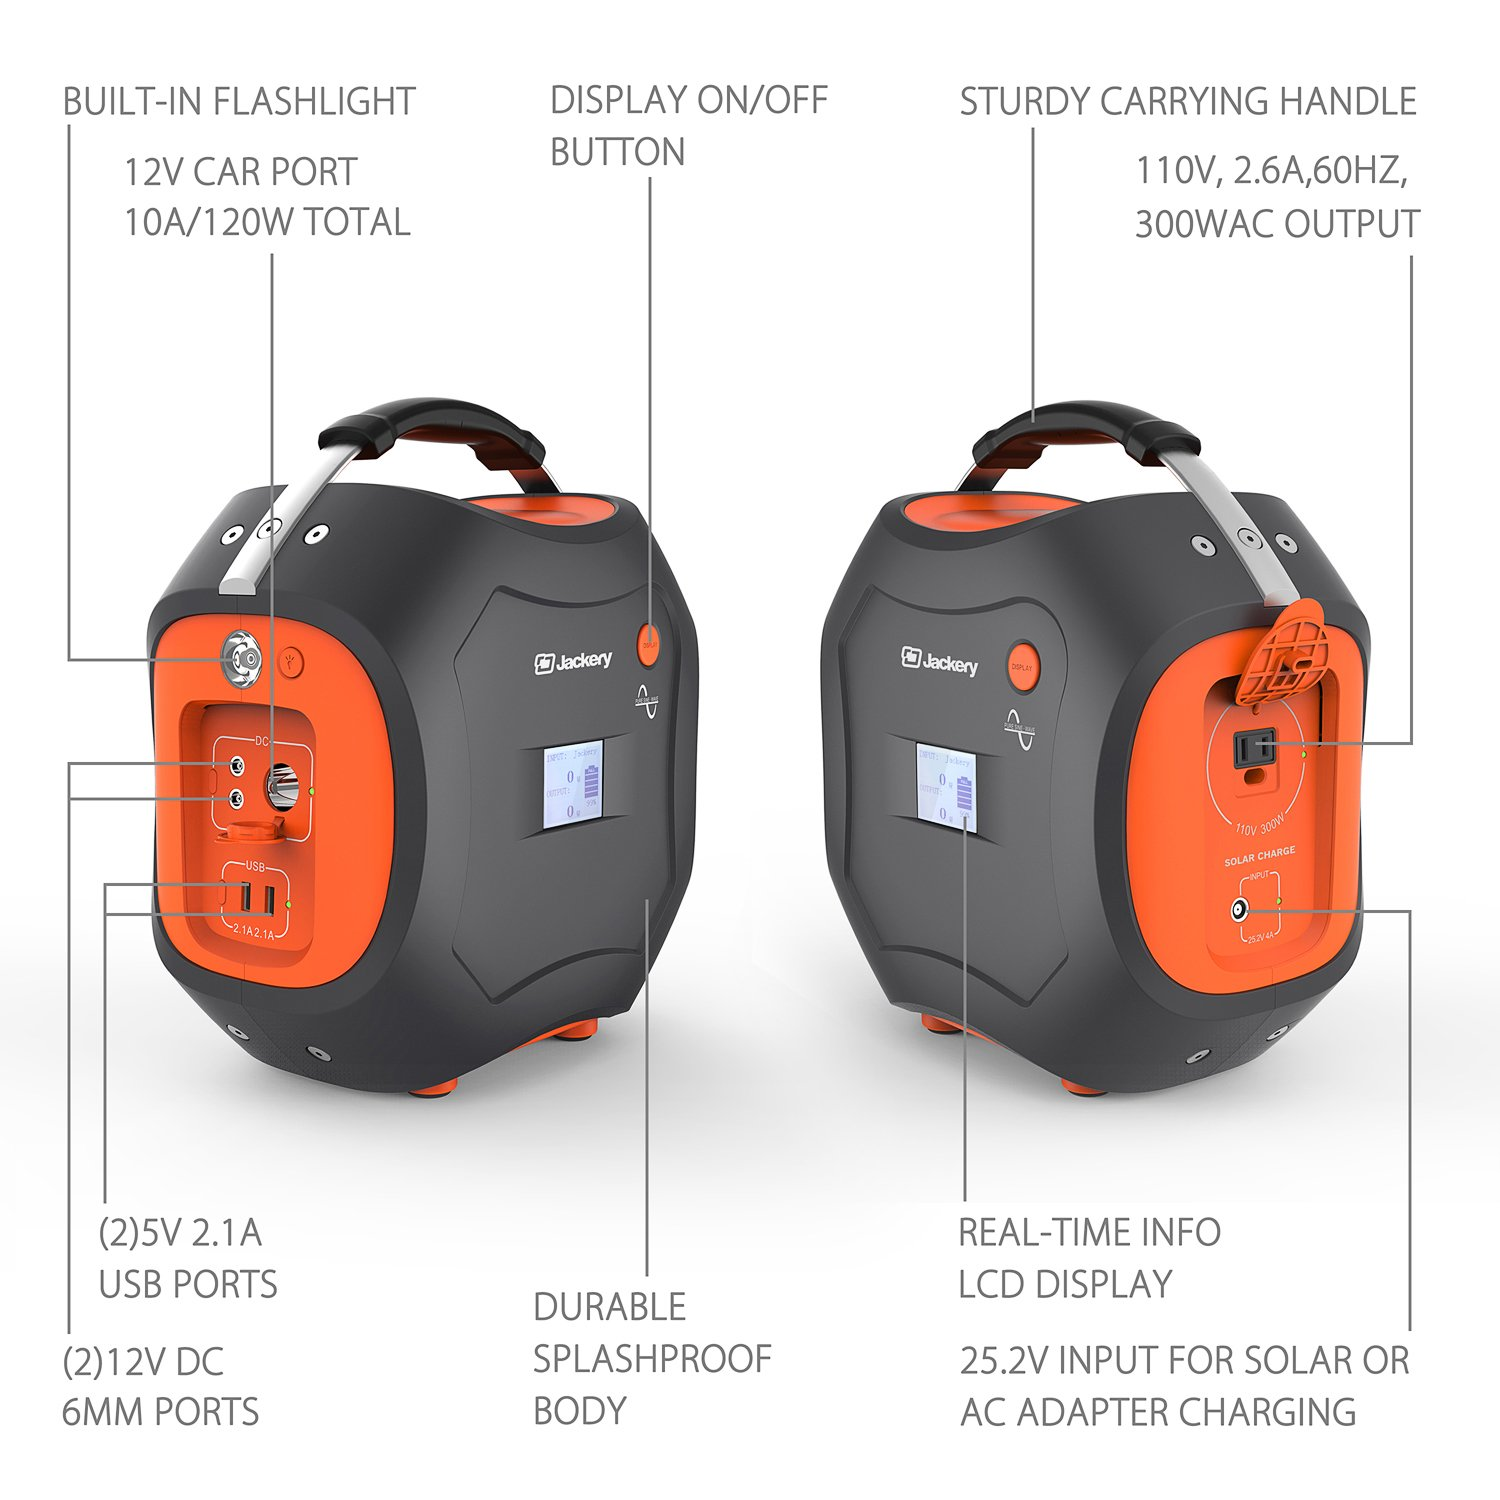 500Wh Portable Generator, Jackery Explorer / Power Pro Rechargeable Lithium Battery Pack Quiet Generator with 110V / 300W AC Outlet, 12V Car, USB Output Clean Off-grid Emergency Power Pack for Camping by Jackery (Image #4)